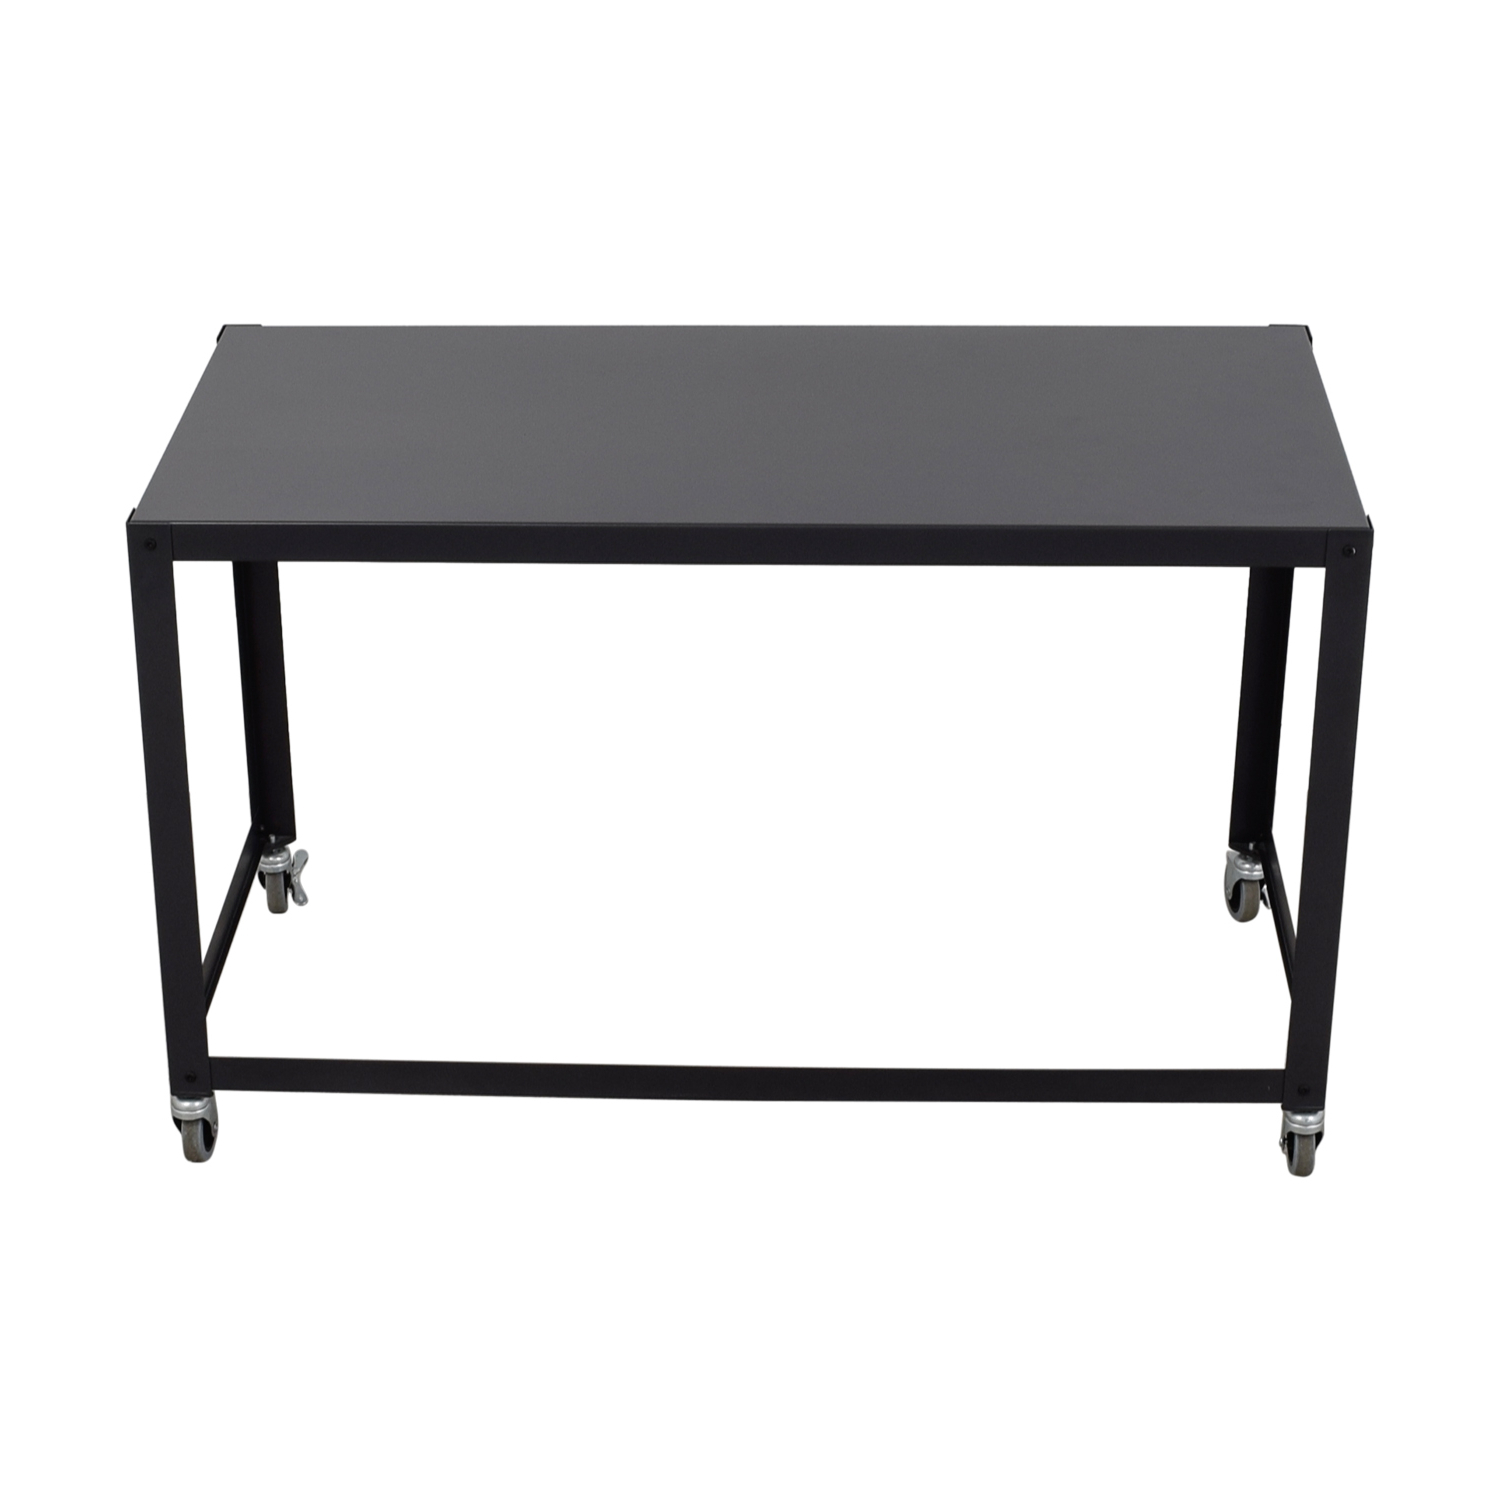 [%44% Off – Cb2 Cb2 Go Cart Rolling Desk / Tables With Most Recent Go Cart White Rolling Coffee Tables|Go Cart White Rolling Coffee Tables Regarding Famous 44% Off – Cb2 Cb2 Go Cart Rolling Desk / Tables|Well Liked Go Cart White Rolling Coffee Tables Throughout 44% Off – Cb2 Cb2 Go Cart Rolling Desk / Tables|Best And Newest 44% Off – Cb2 Cb2 Go Cart Rolling Desk / Tables Inside Go Cart White Rolling Coffee Tables%] (View 7 of 20)